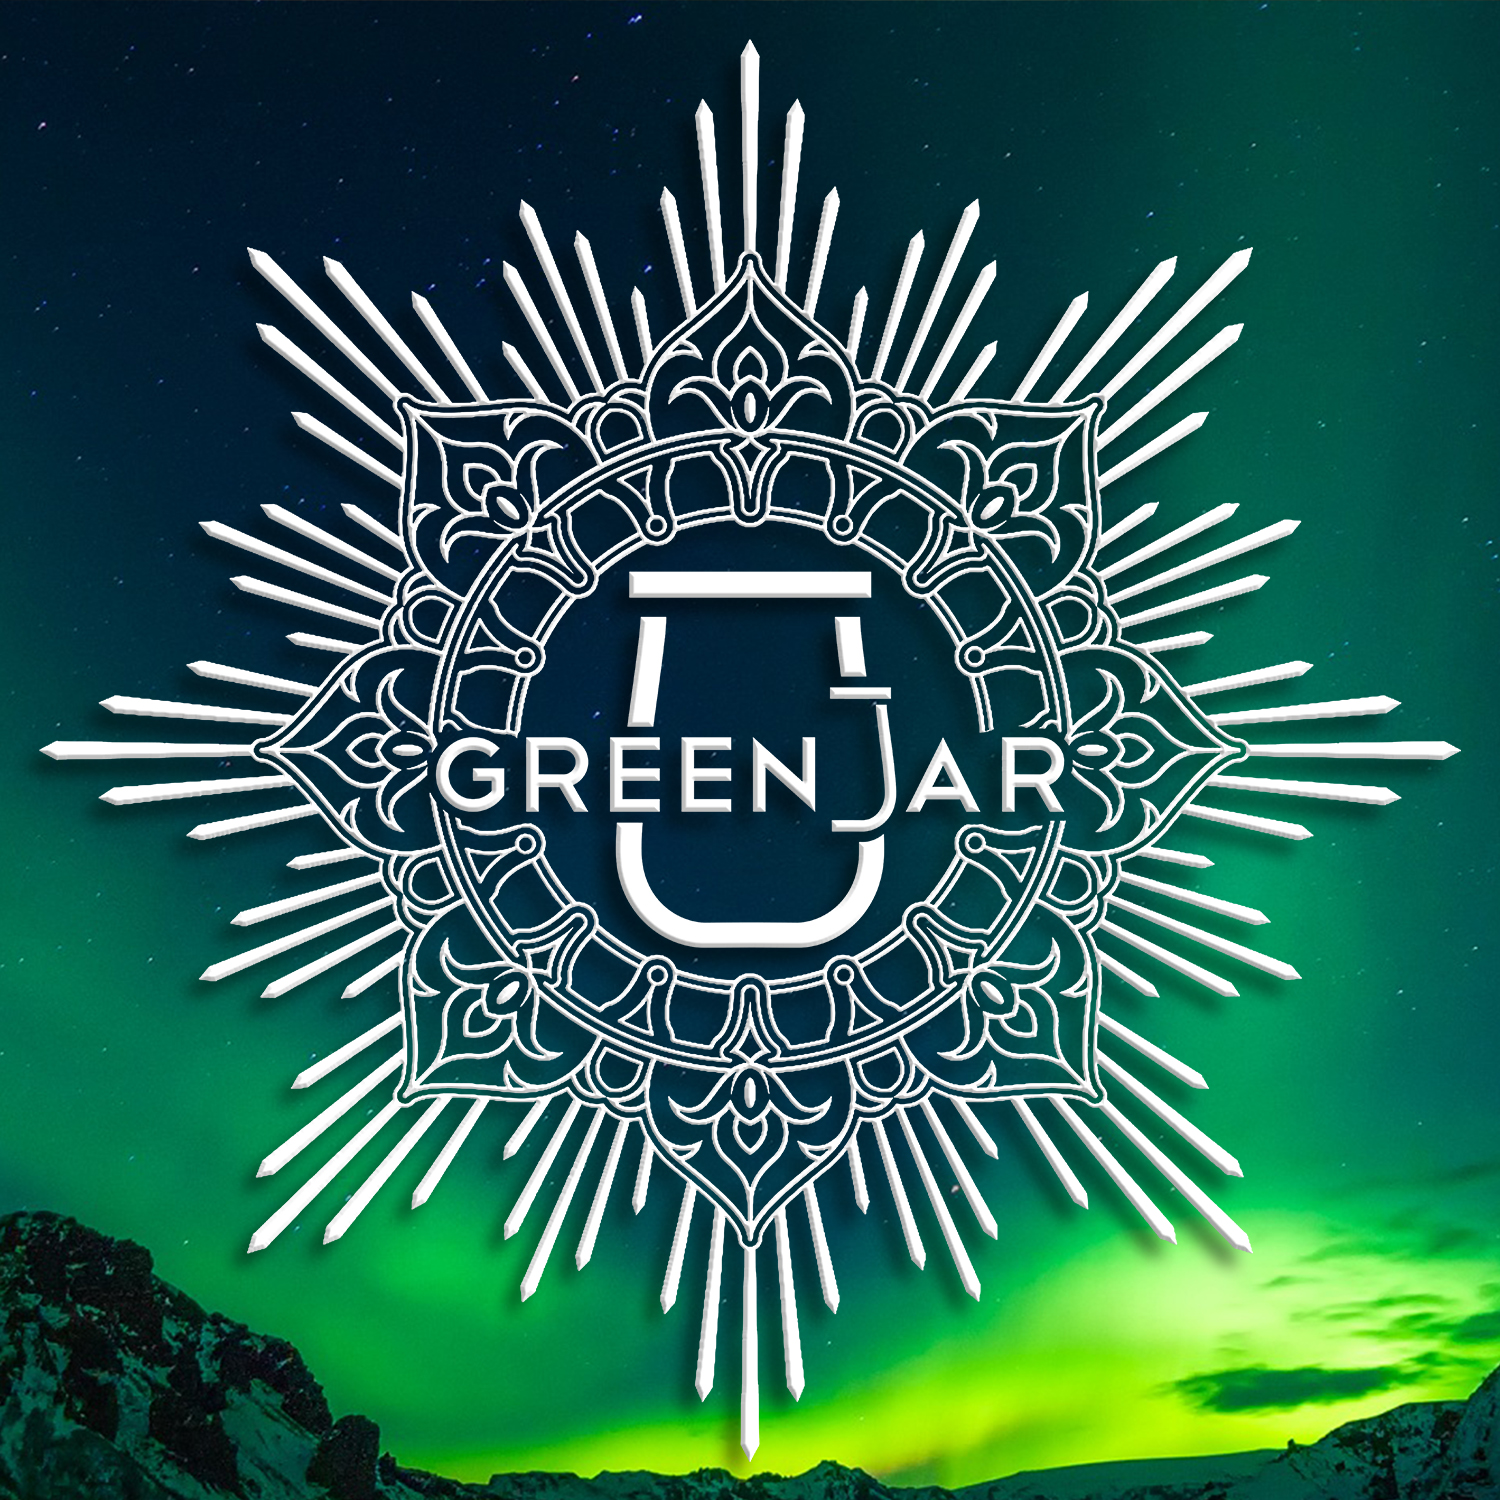 Welcome to Green Jar